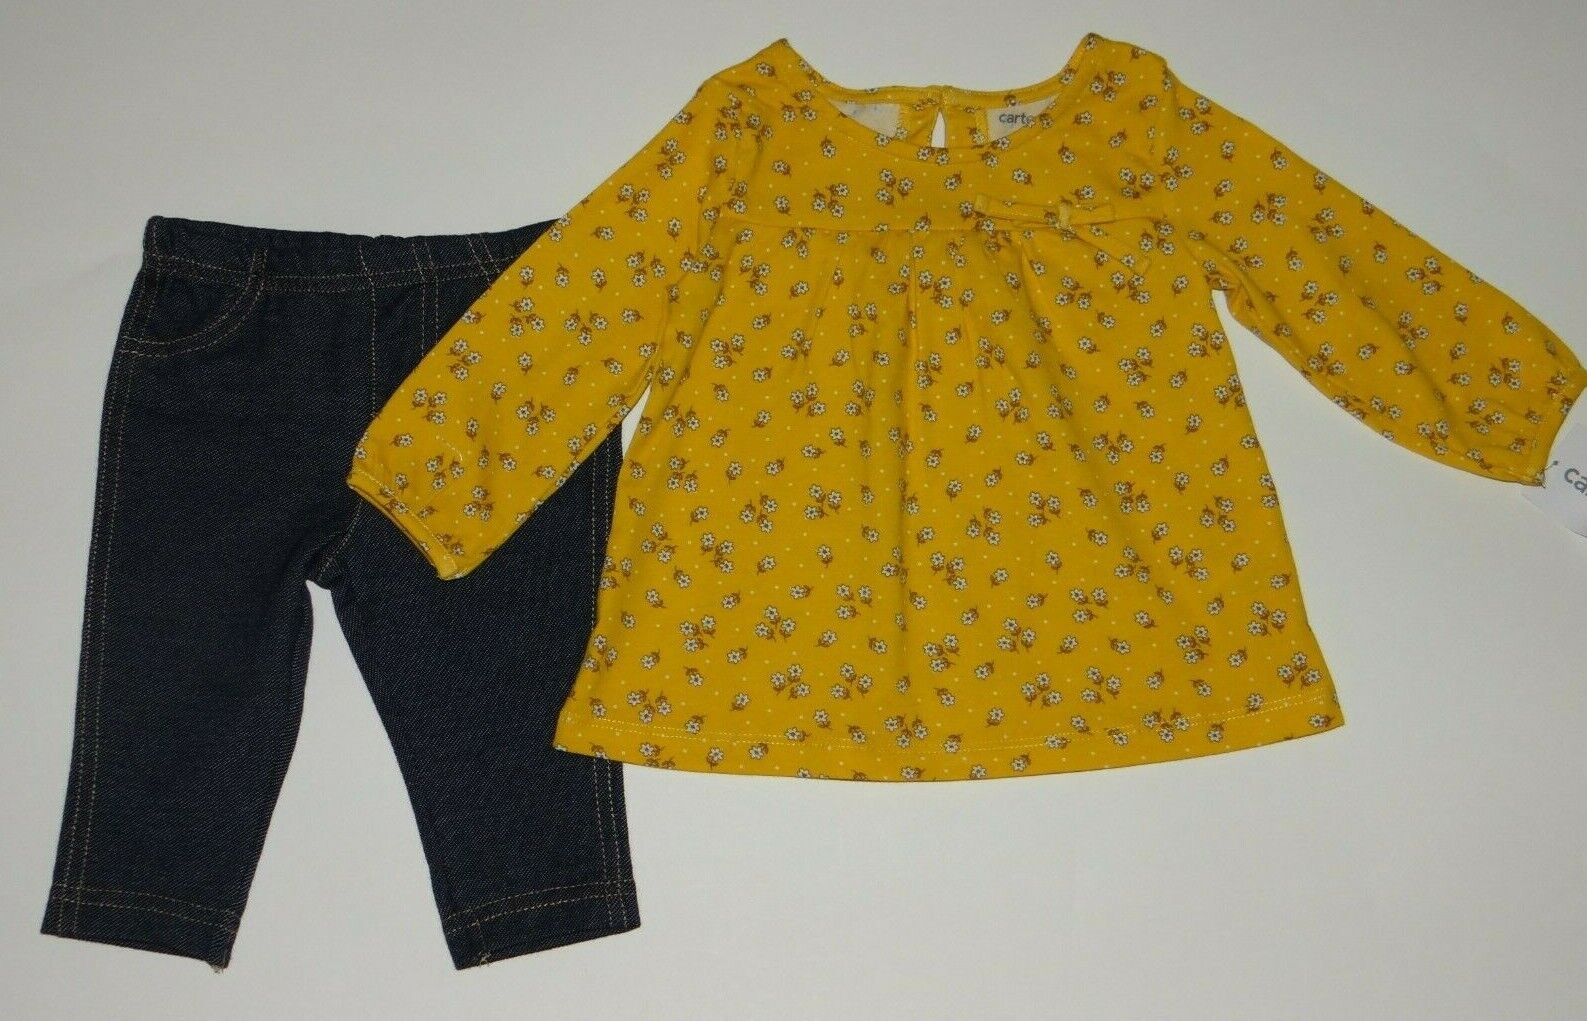 Baby girl clothes, 18 months, Carter's top/jeggings/SEE DETA